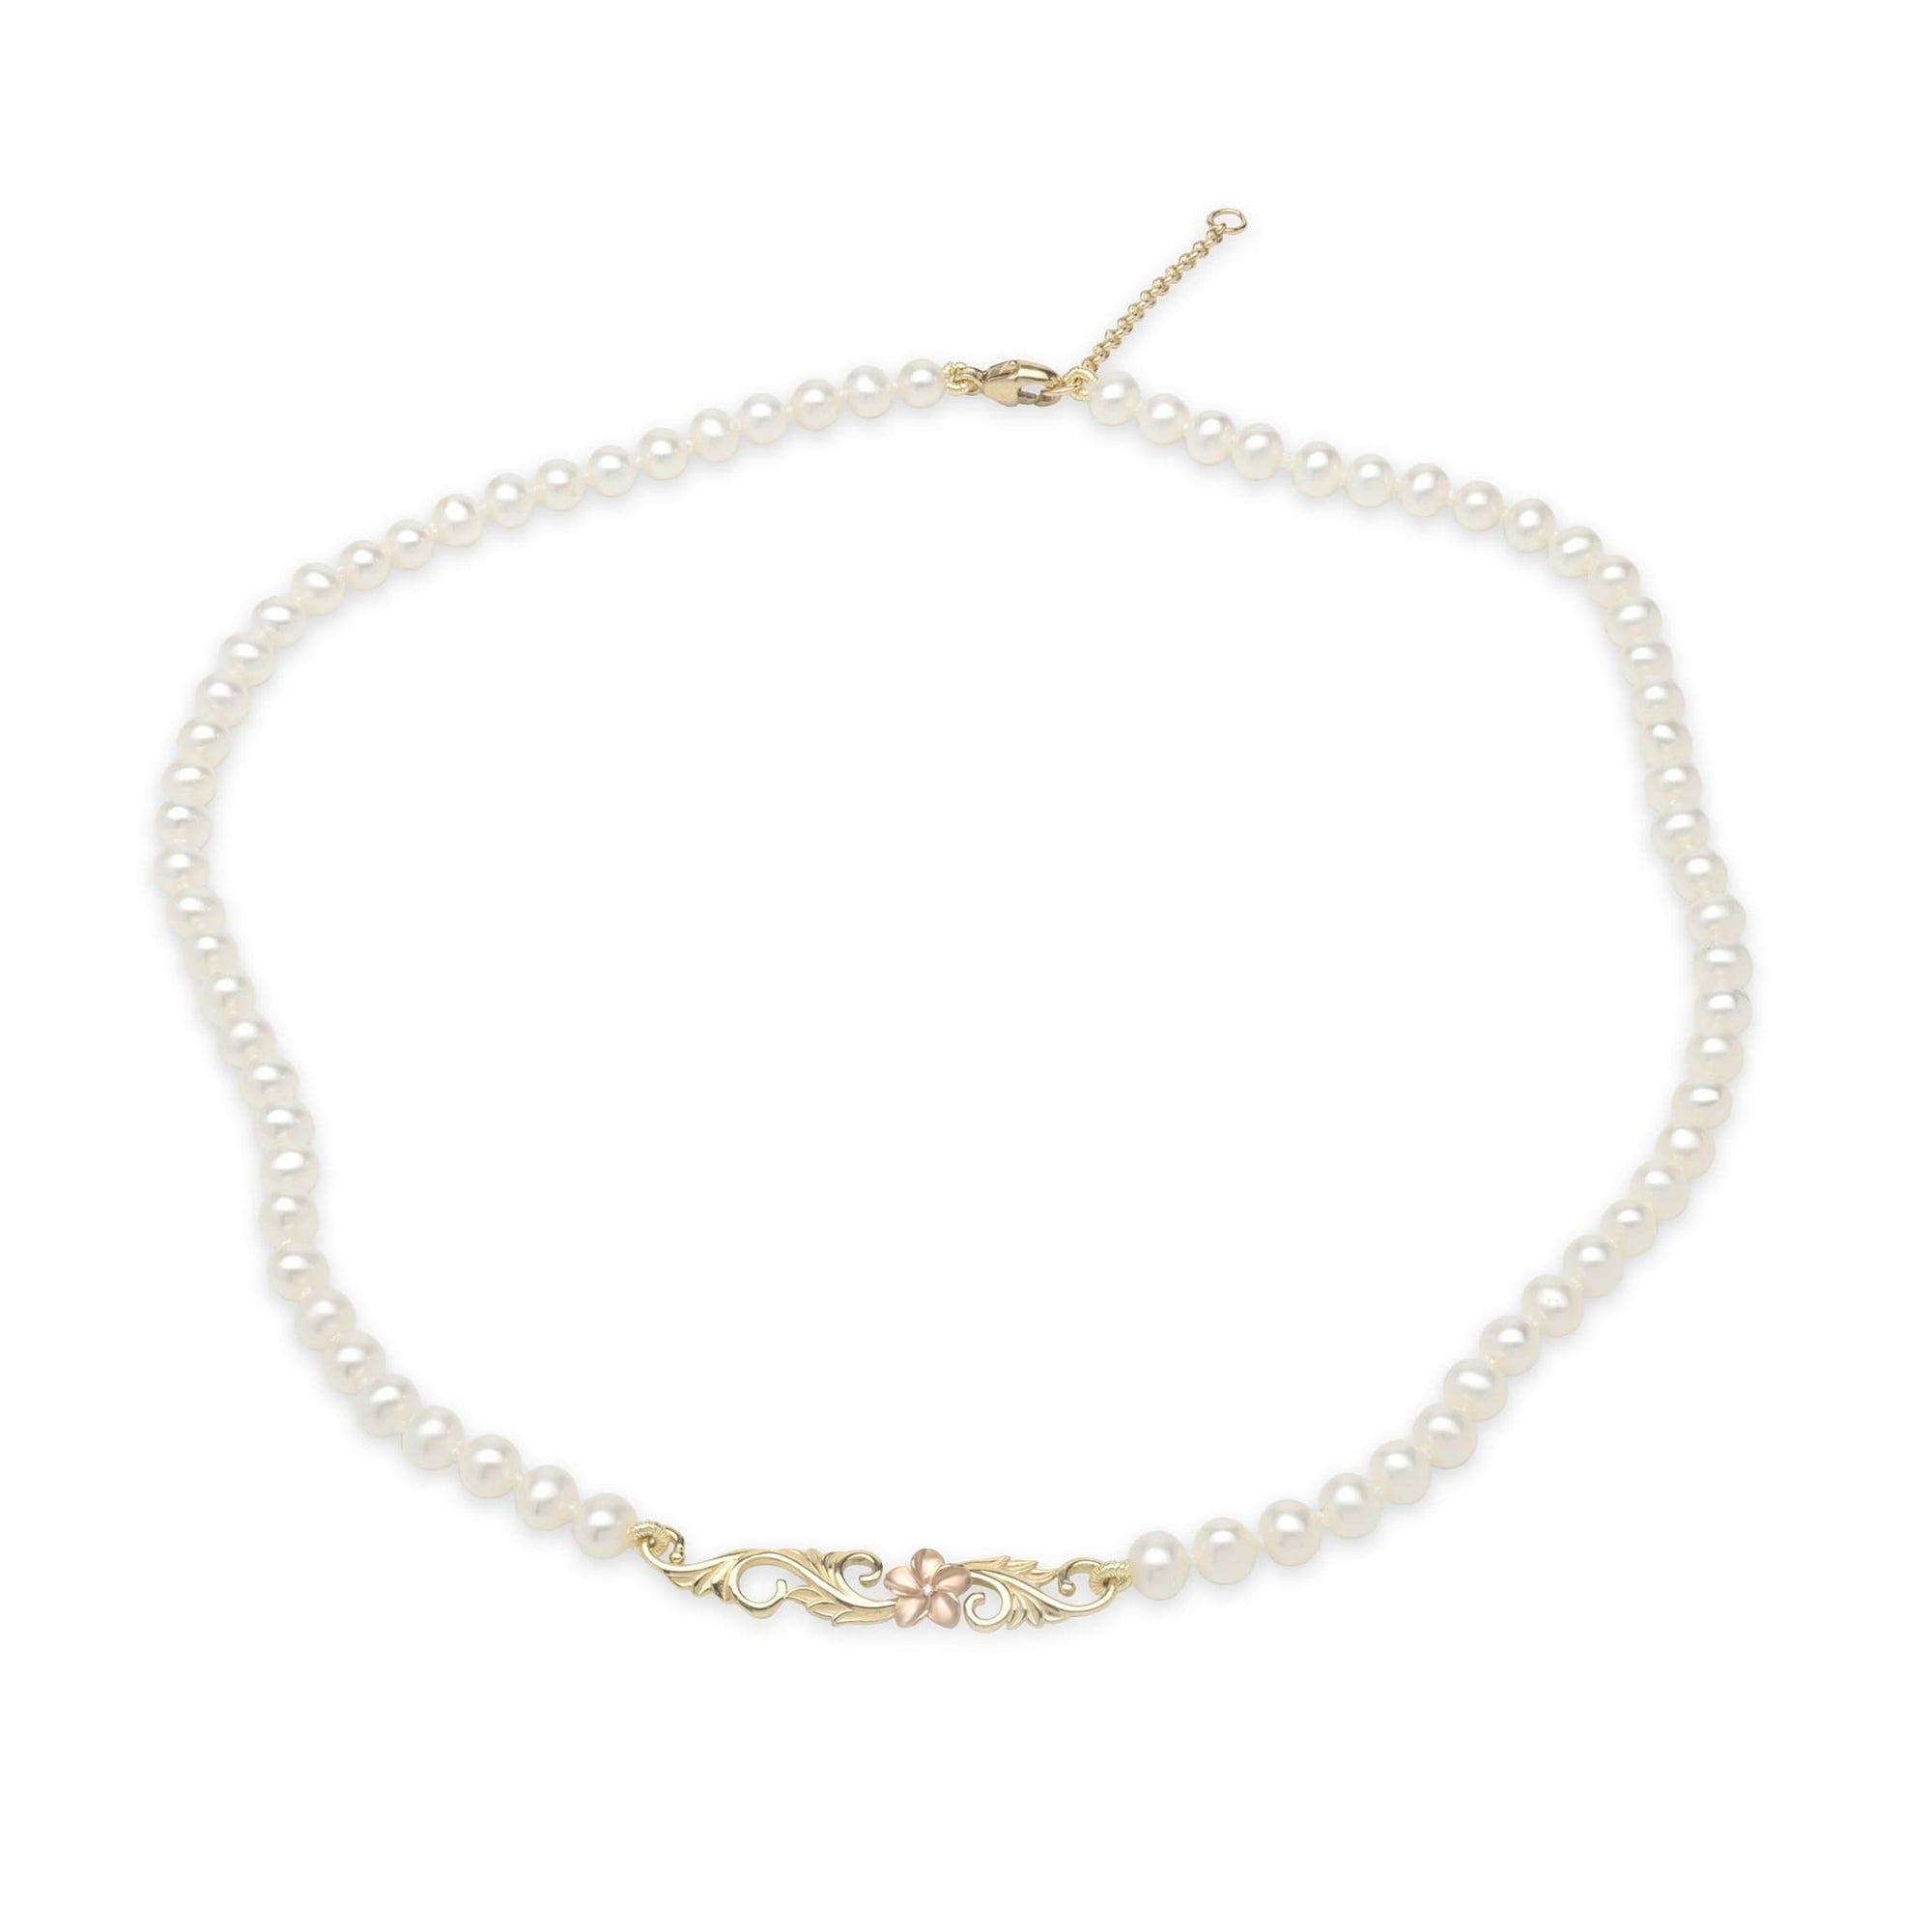 "16-17"" Adjustable Freshwater Pearl Necklace with Diamaond in Two-Tone Gold-[SKU]"